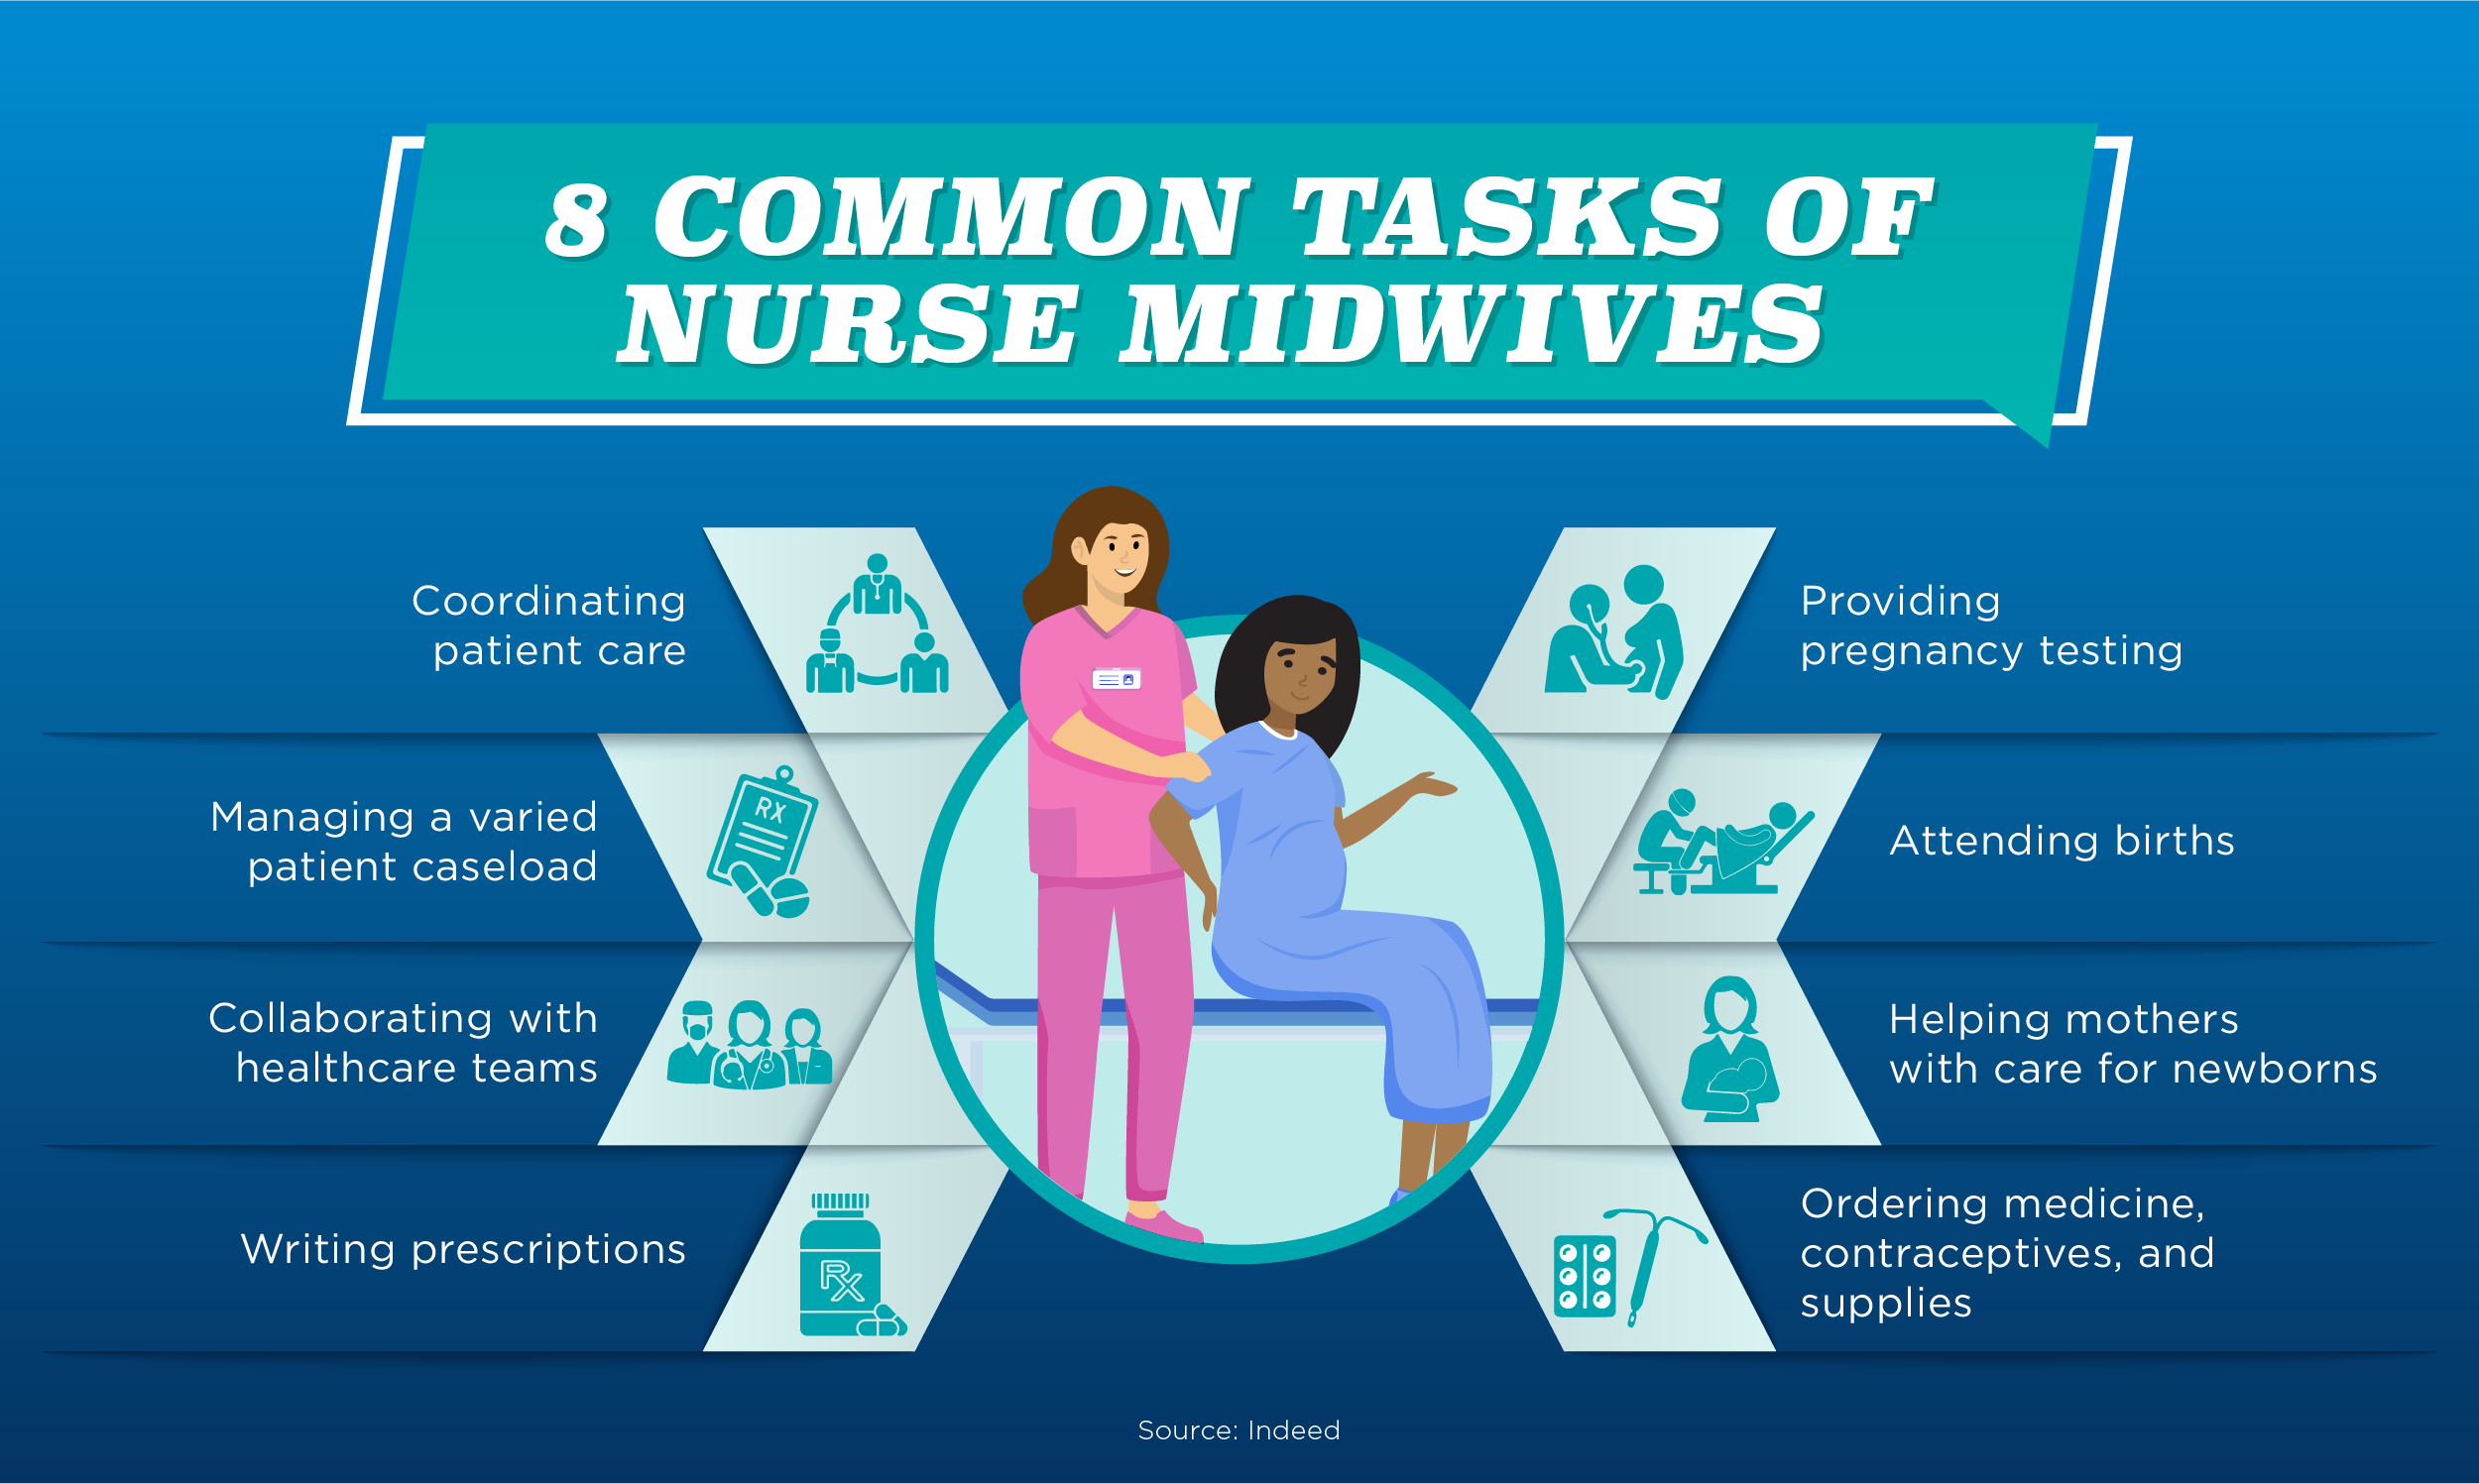 Eight of nurse midwives' most common responsibilities.